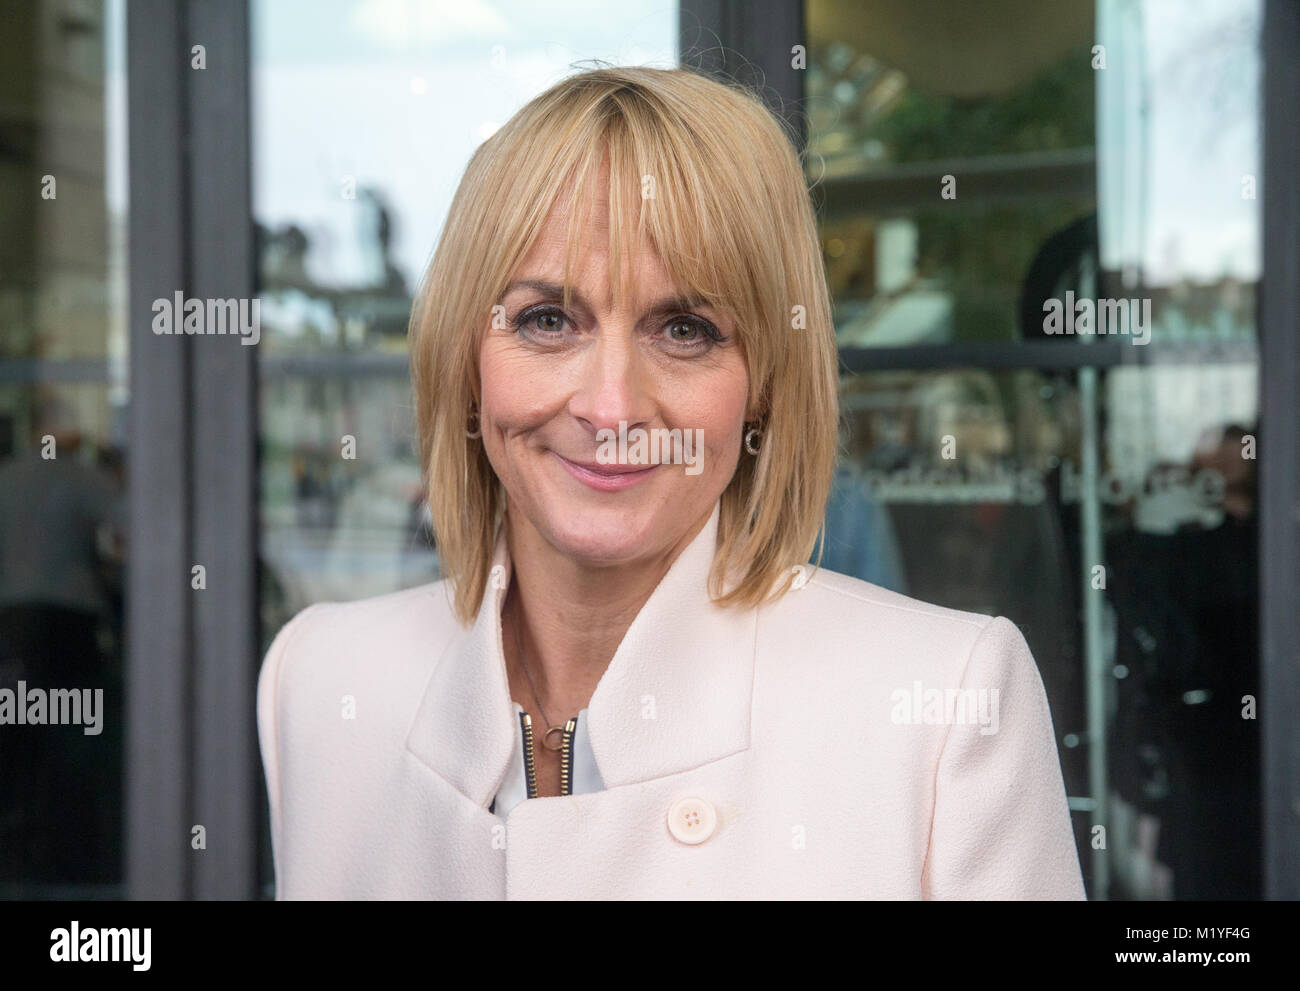 Journalist and Television presenter, Louise Minchin, arrives at Portcullis House to support Carrie Gracie at the - Stock Image